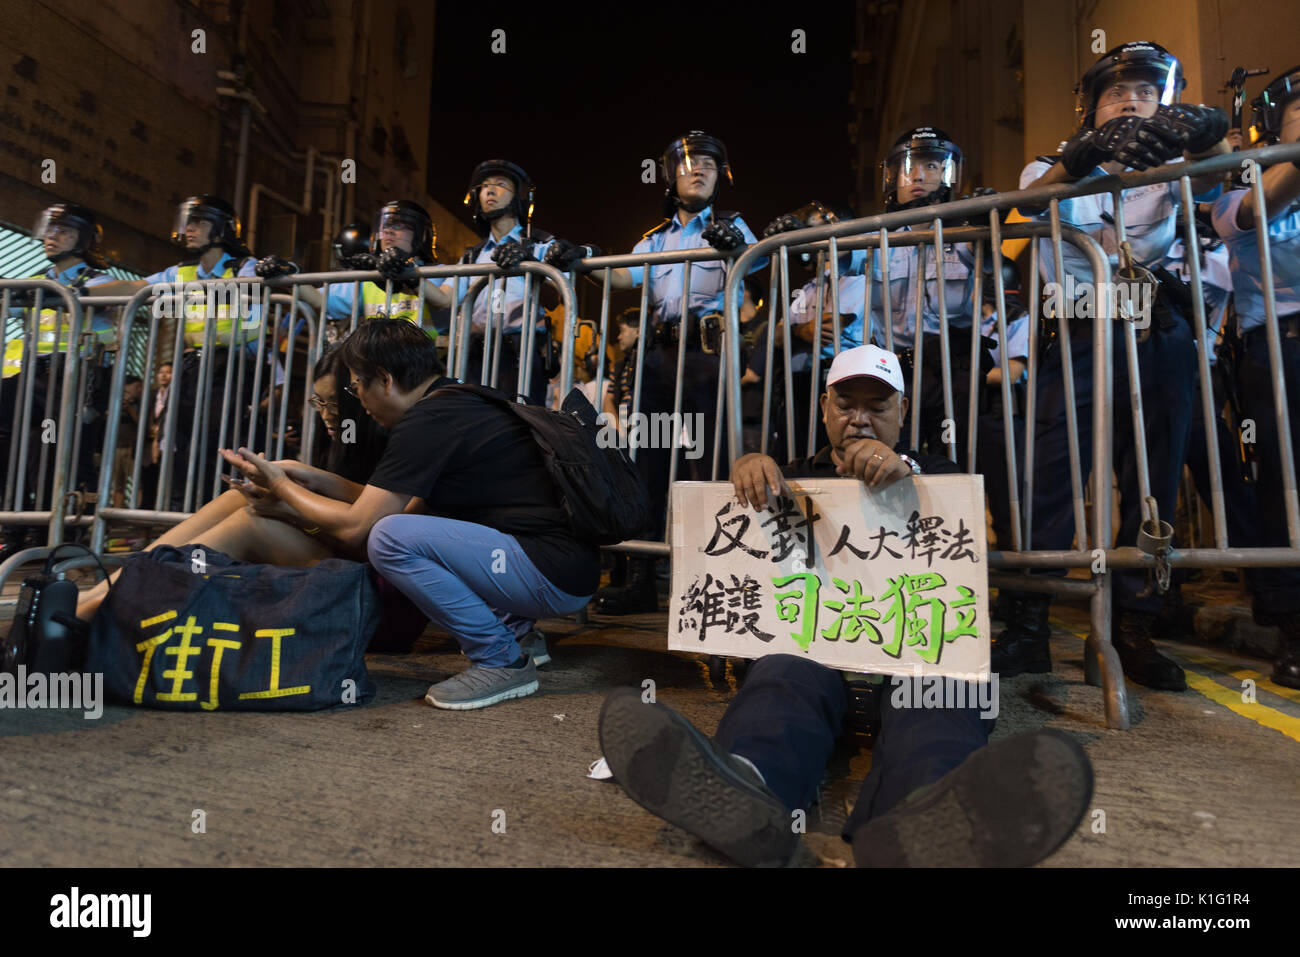 A man sits down before the police with a board demanding the respect of the 'One country two systems' principle in Hong Kong. - Stock Image